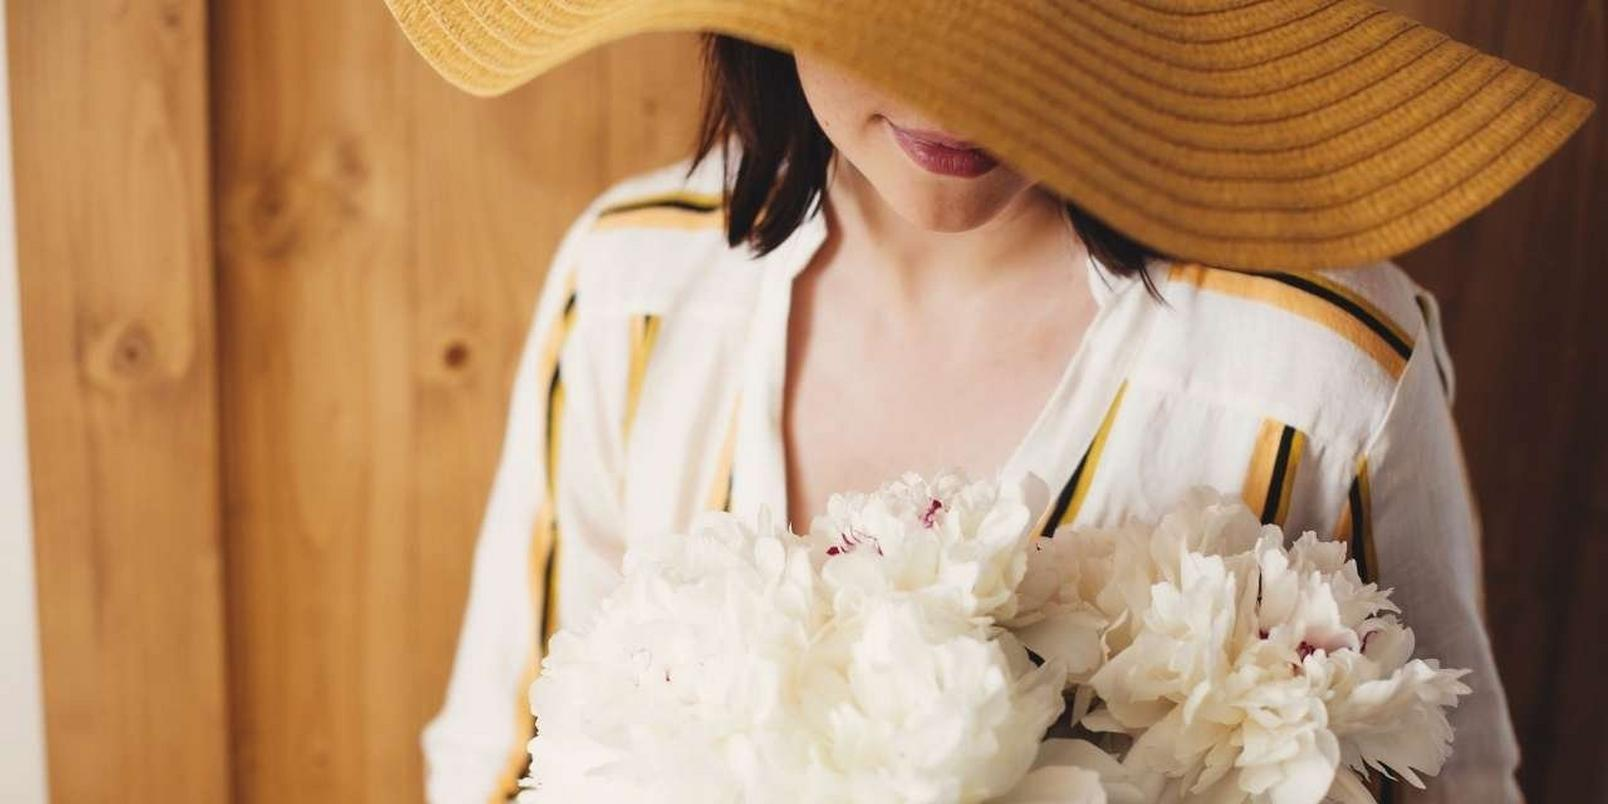 peonies-facts-that-may-surprise-you-4